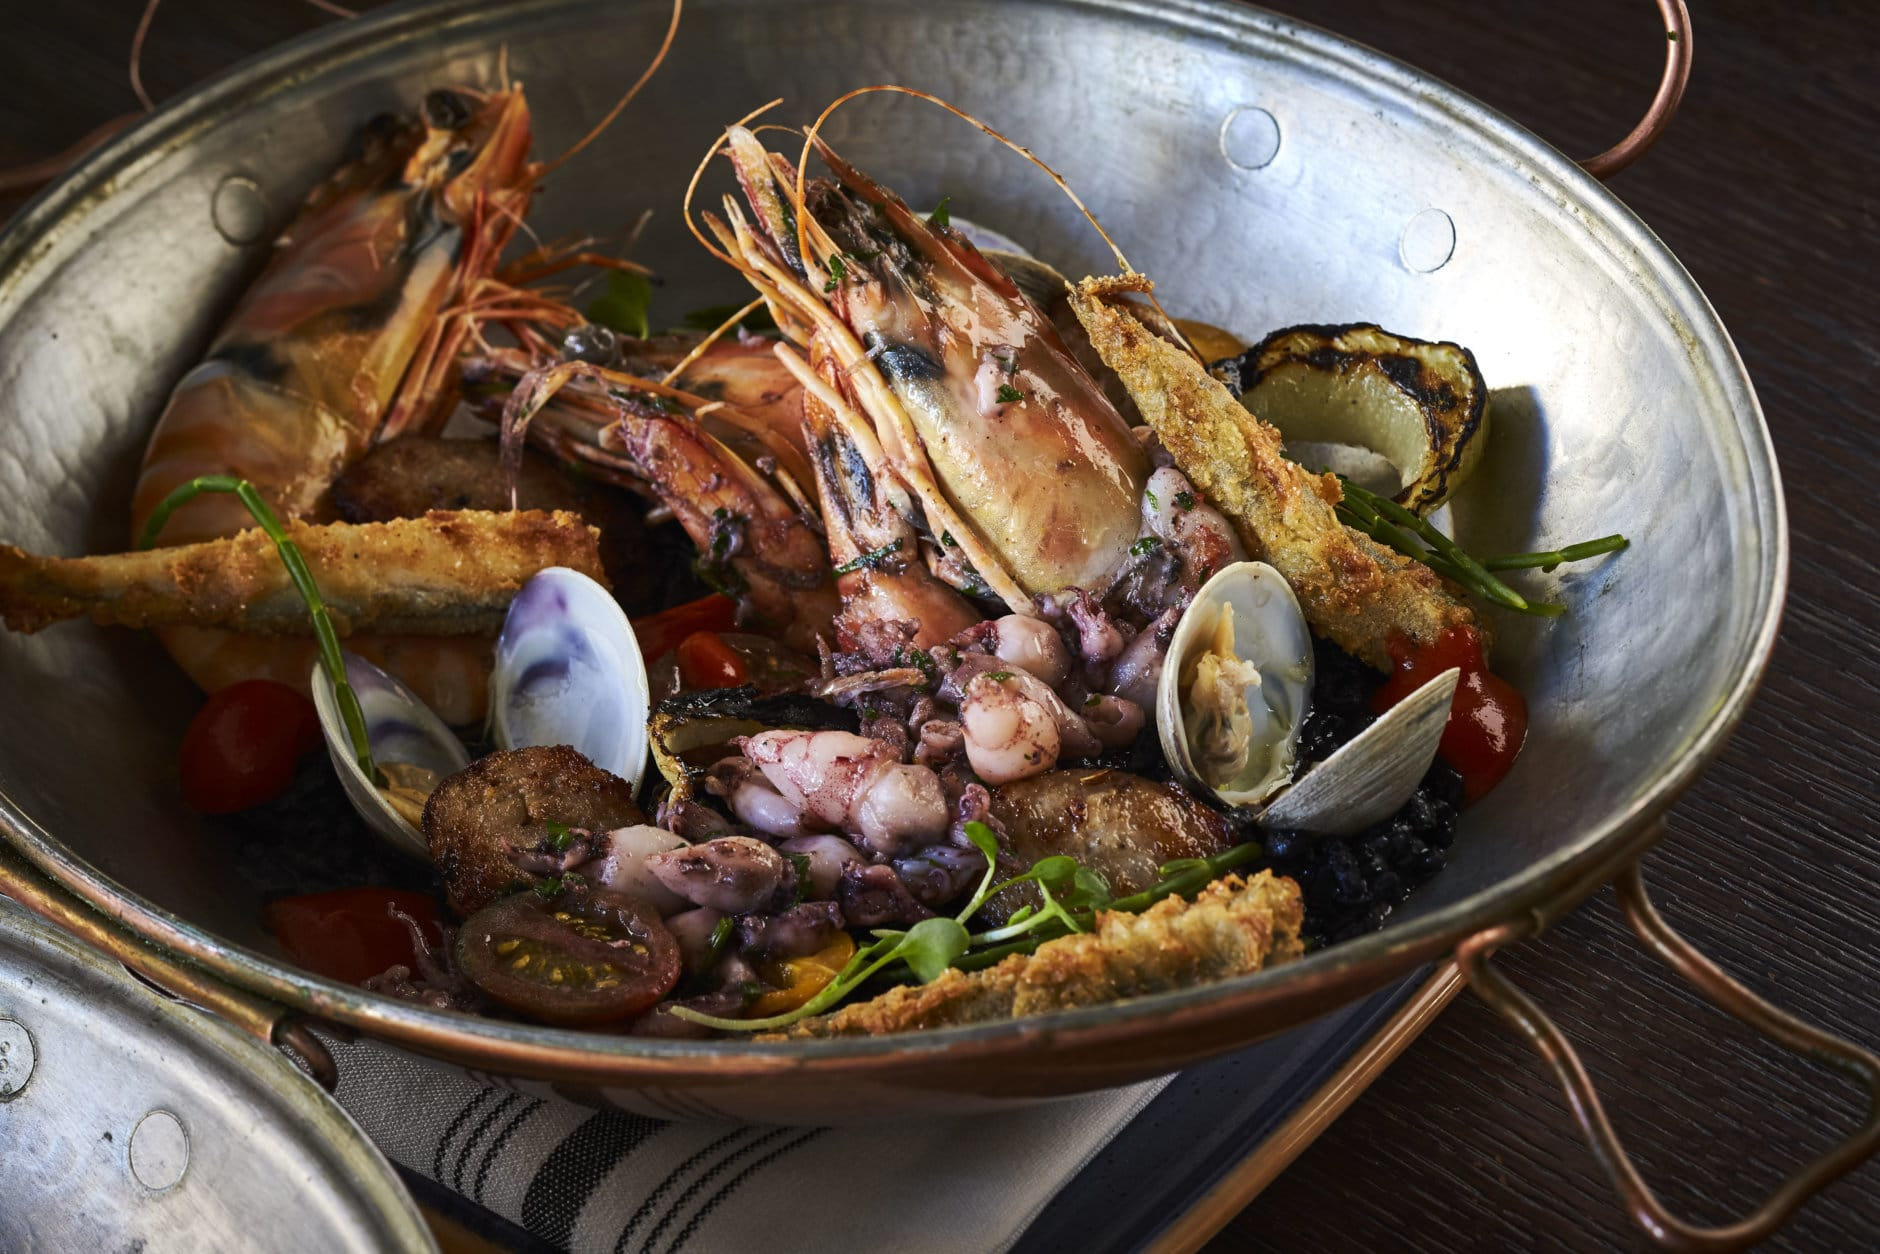 The arroz negro Portuguese seafood stew. (Courtesy Greg Powers)